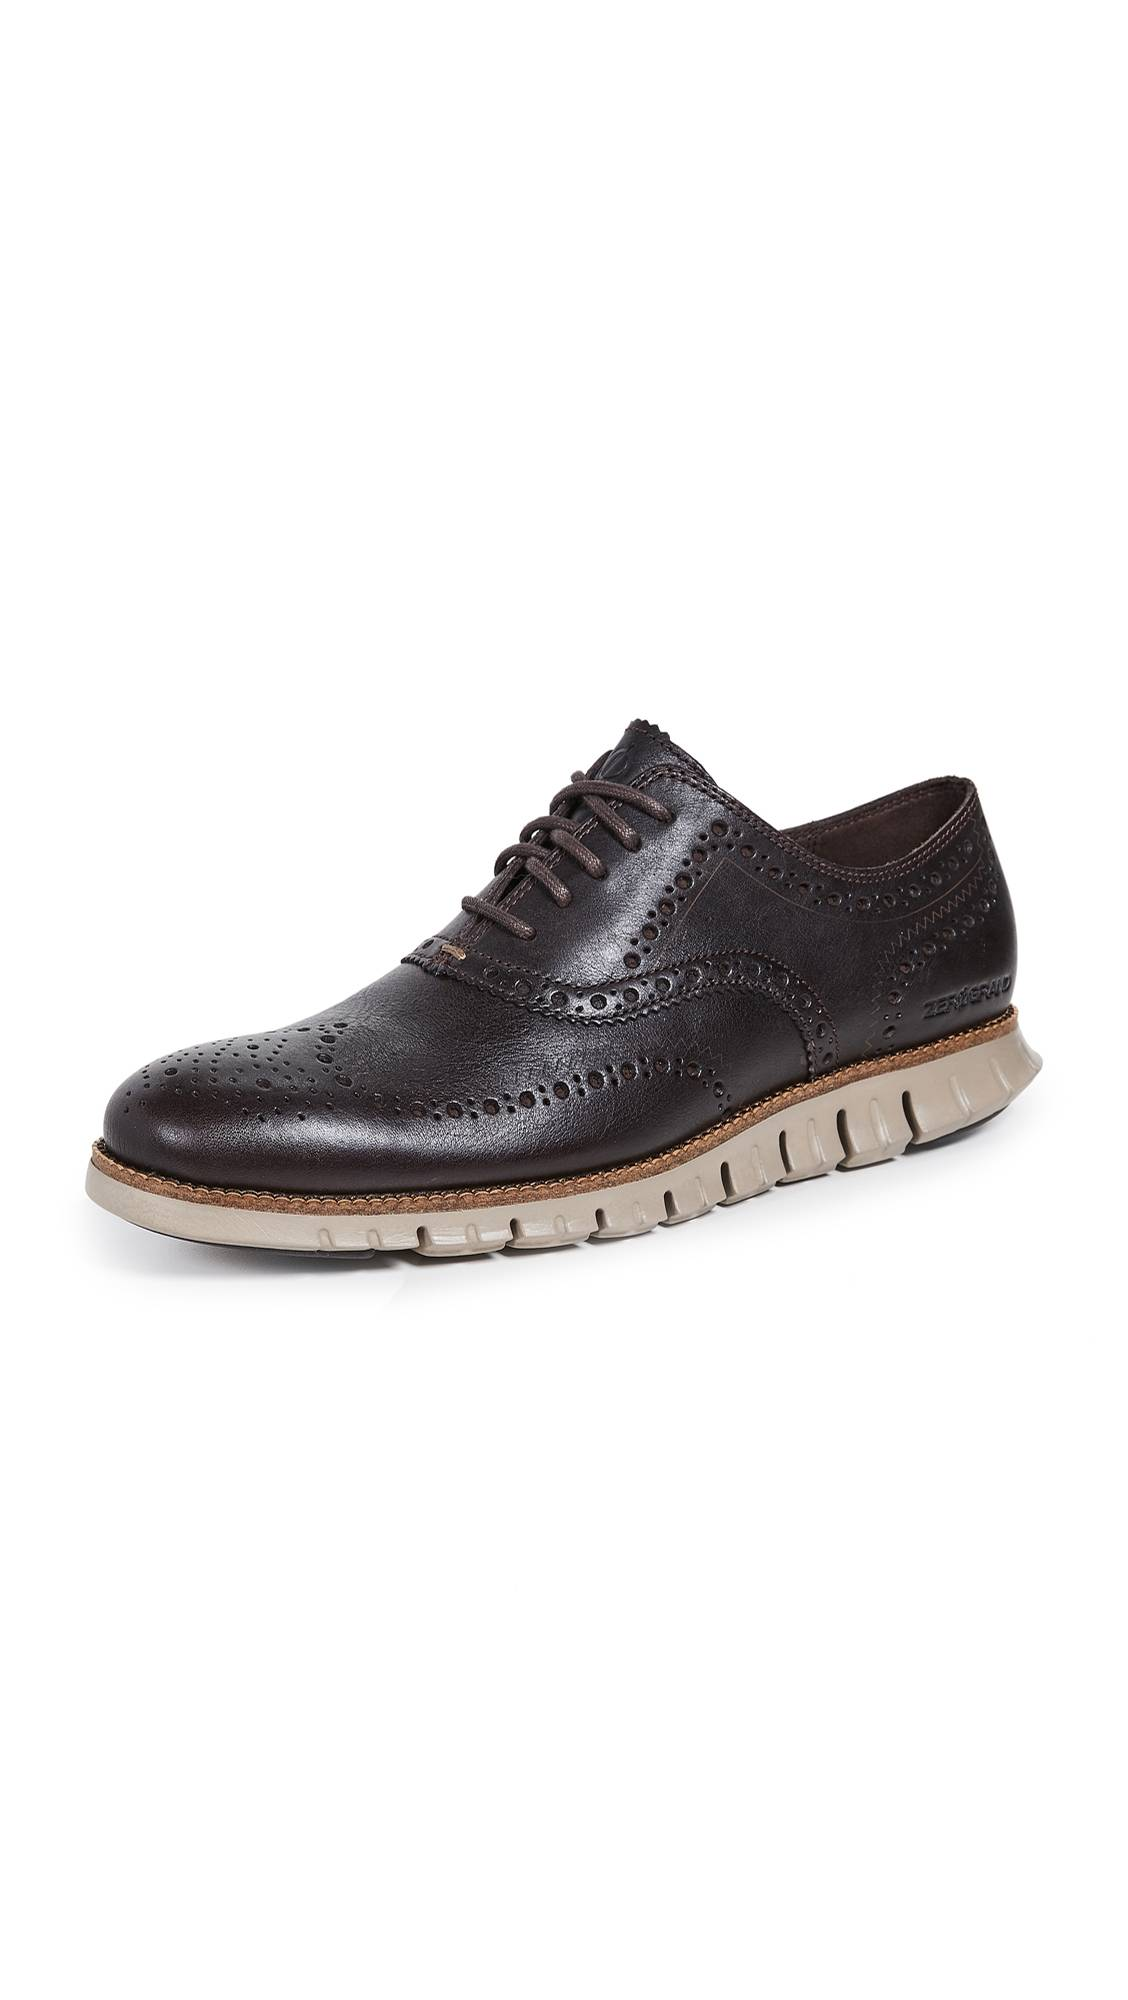 Cole Haan ZeroGrand Wingtip Oxford Shoes - Java - Size: 13